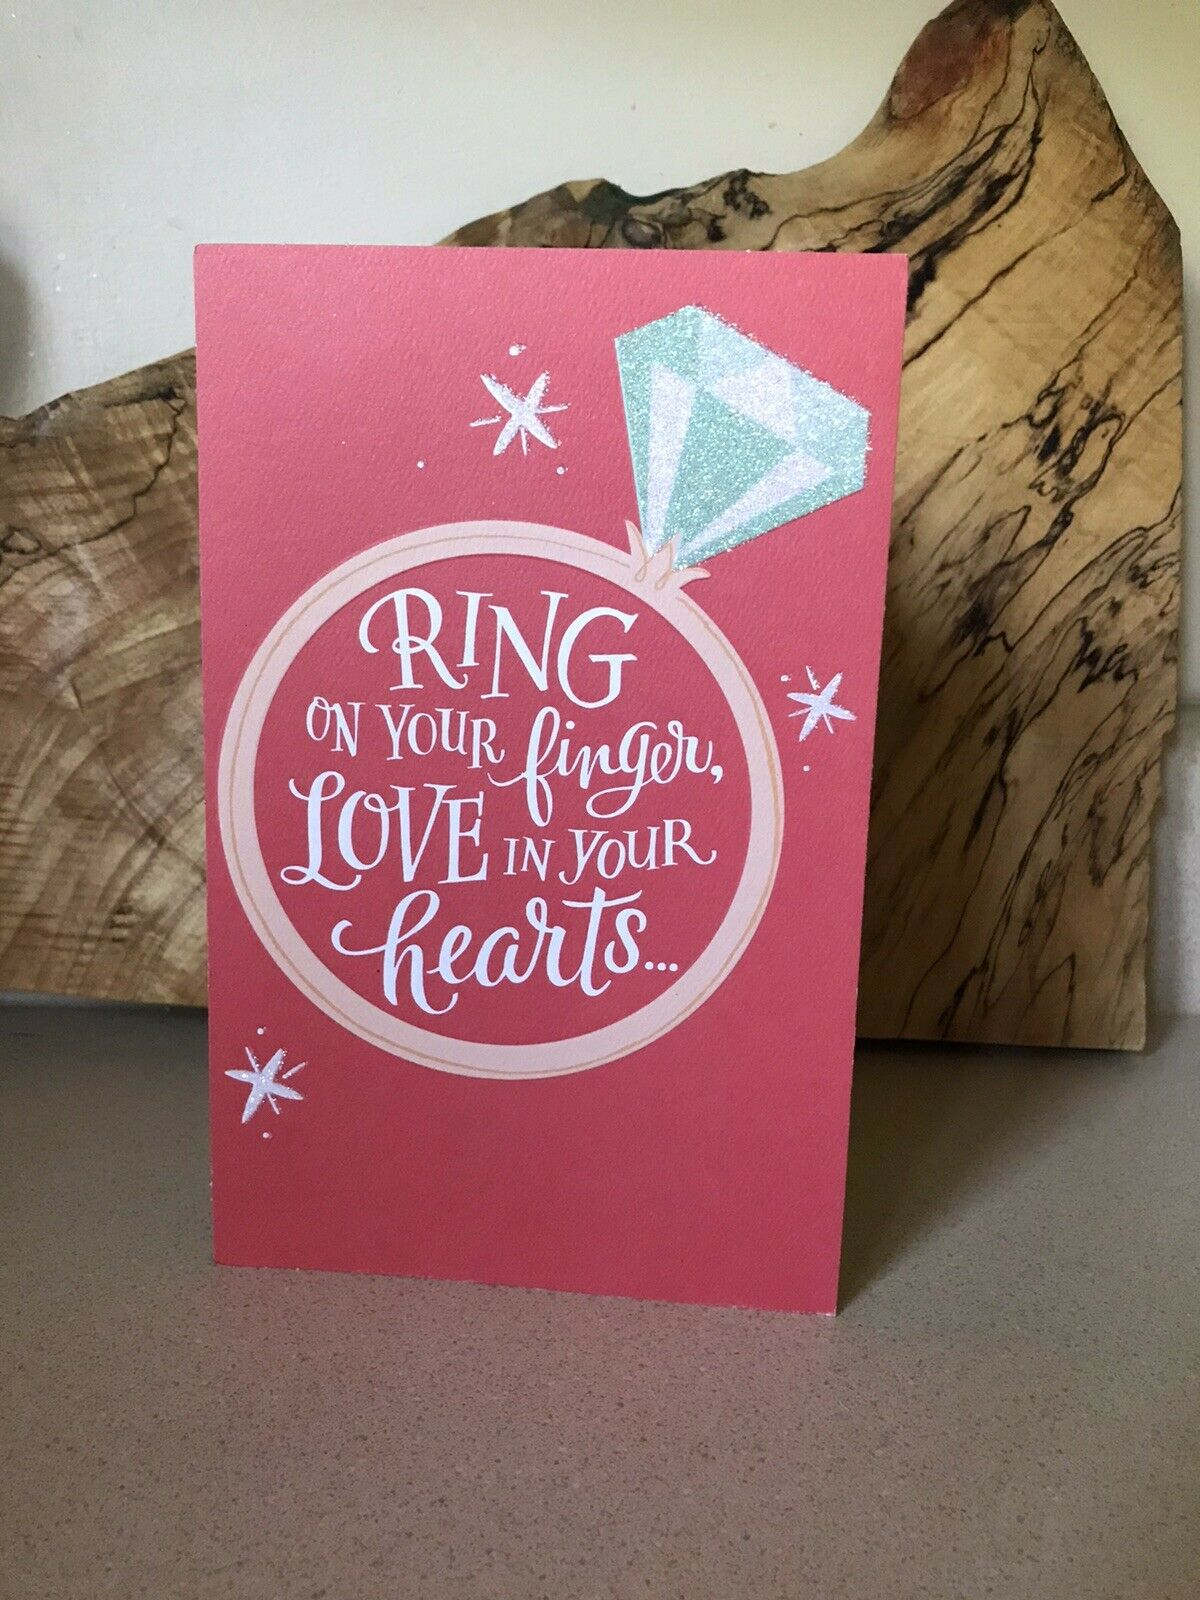 Congratulations on Your Engagement Couple Ring & Hearts Design Engagement  Card for sale online | eBay